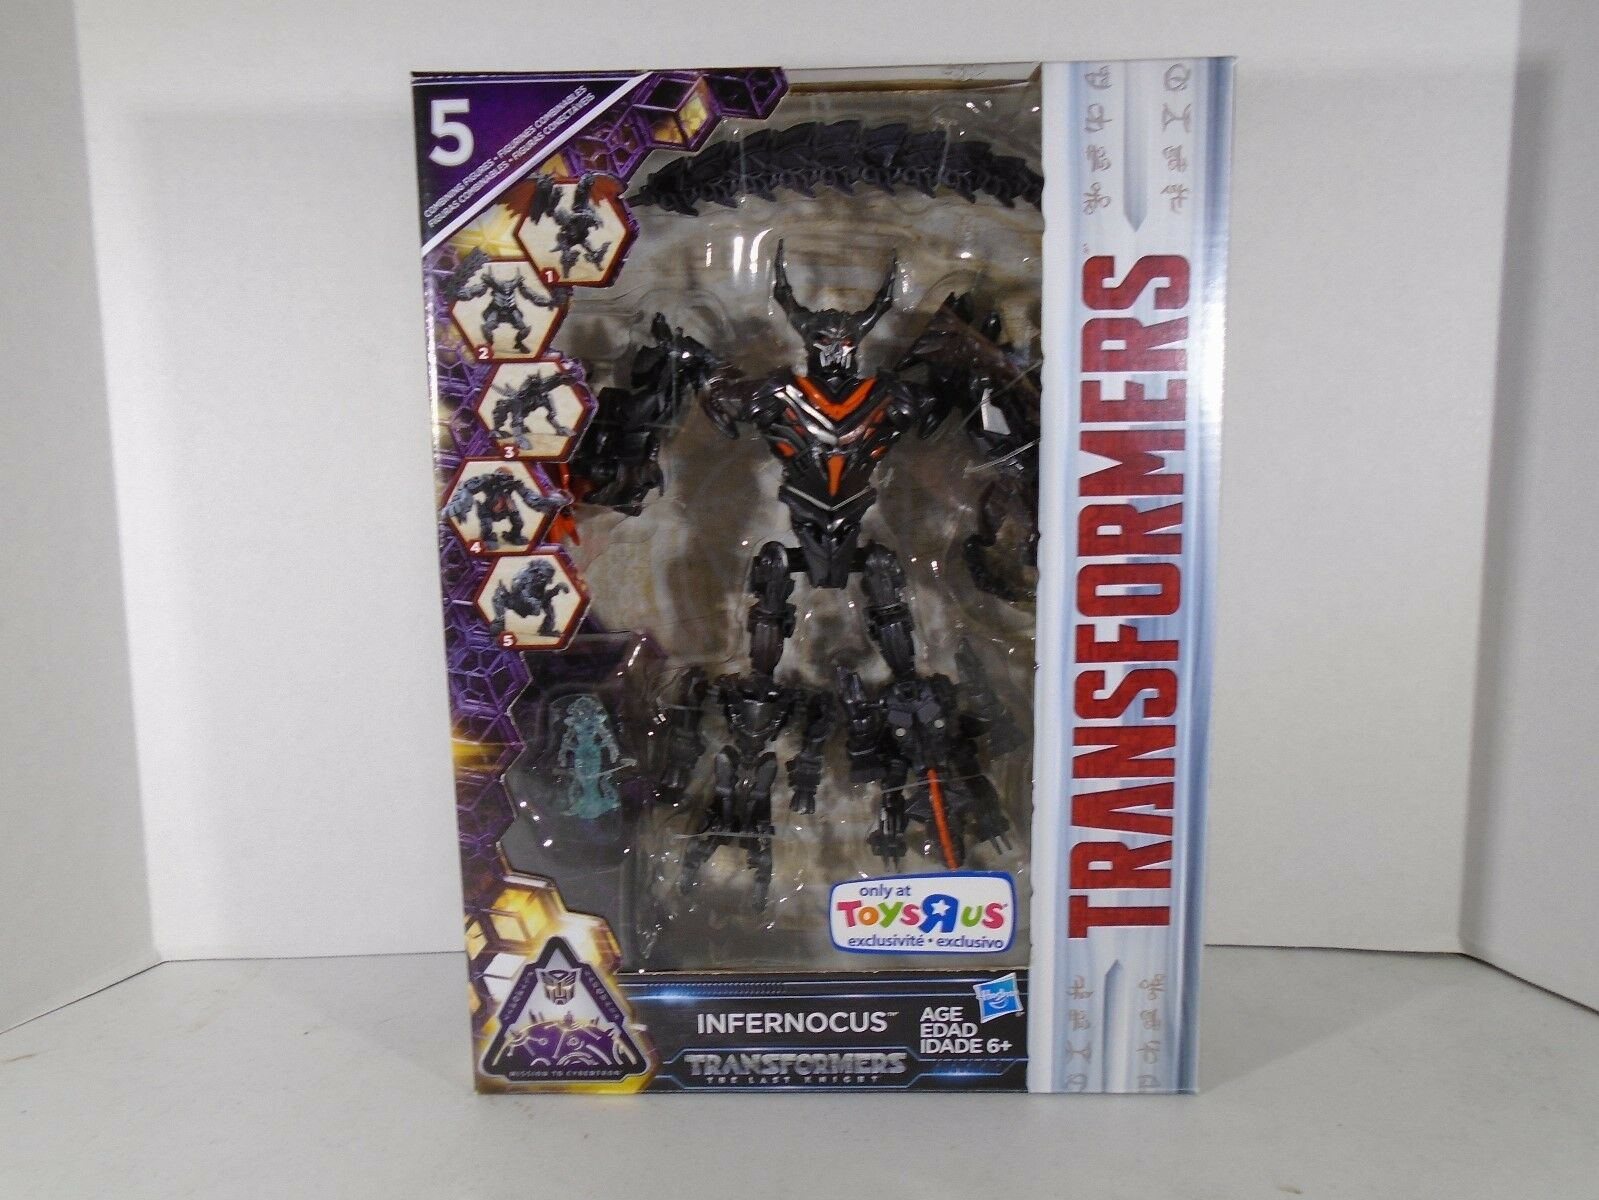 2016 2016 2016 HASBRO--TRANSFORMERS THE LAST KNIGHT--INFERNOCUS FIGURE (NEW) TOYRUS EX. a6094a